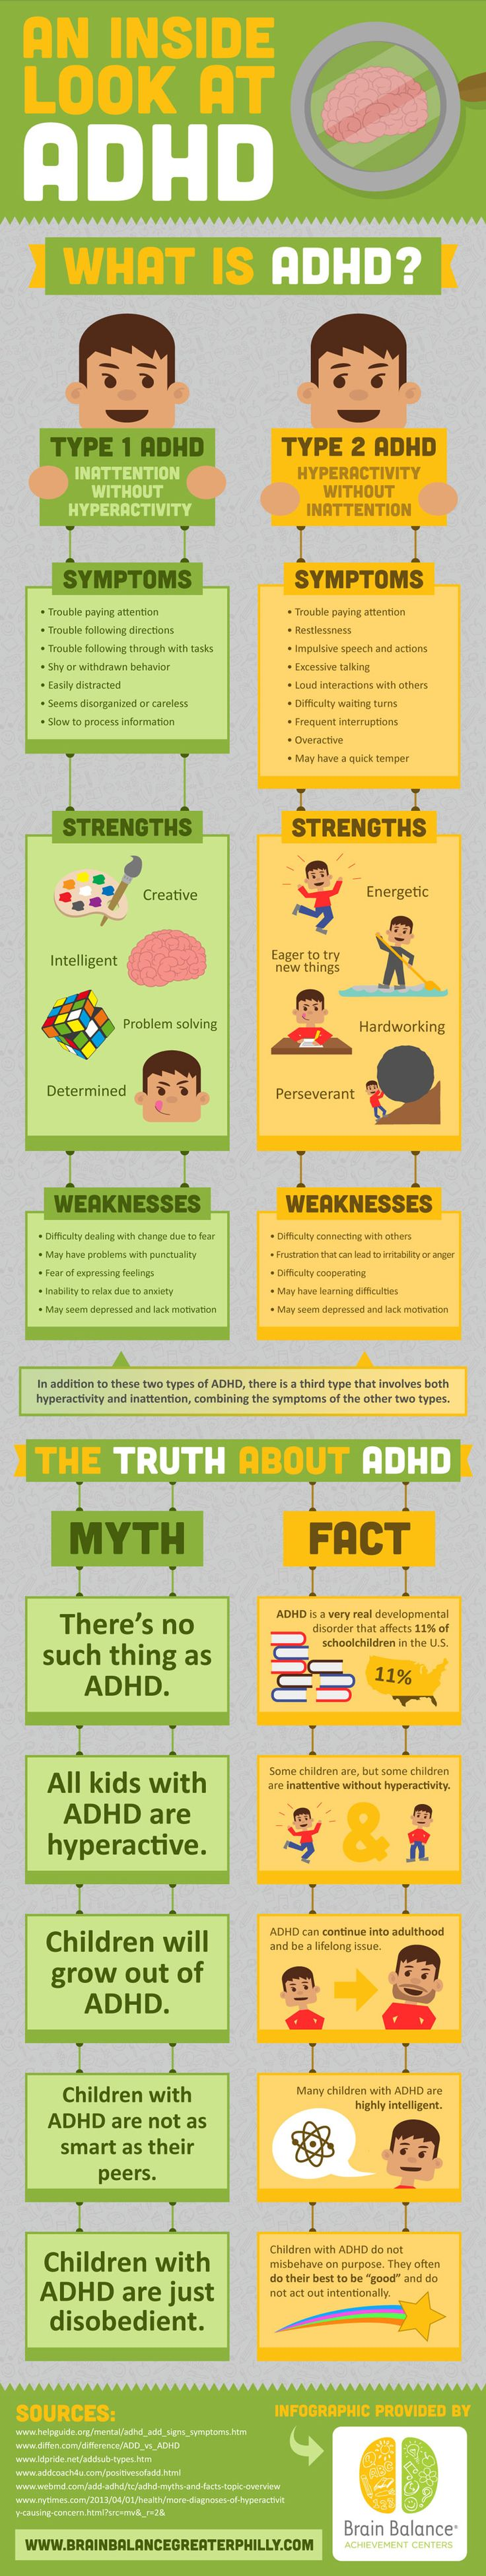 ADHD Infographic. TRIED (read) 3/3/16. TRUE!! I would say our ADHD boy is about 90% accurate in this descriptions chart.